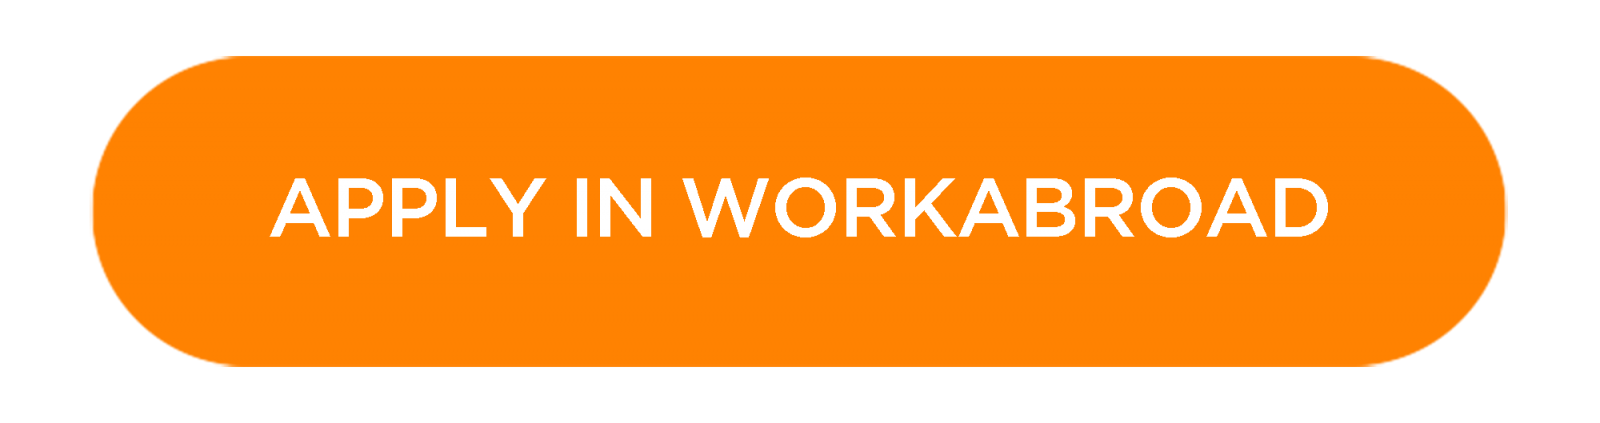 Apply in Workabroad CTA